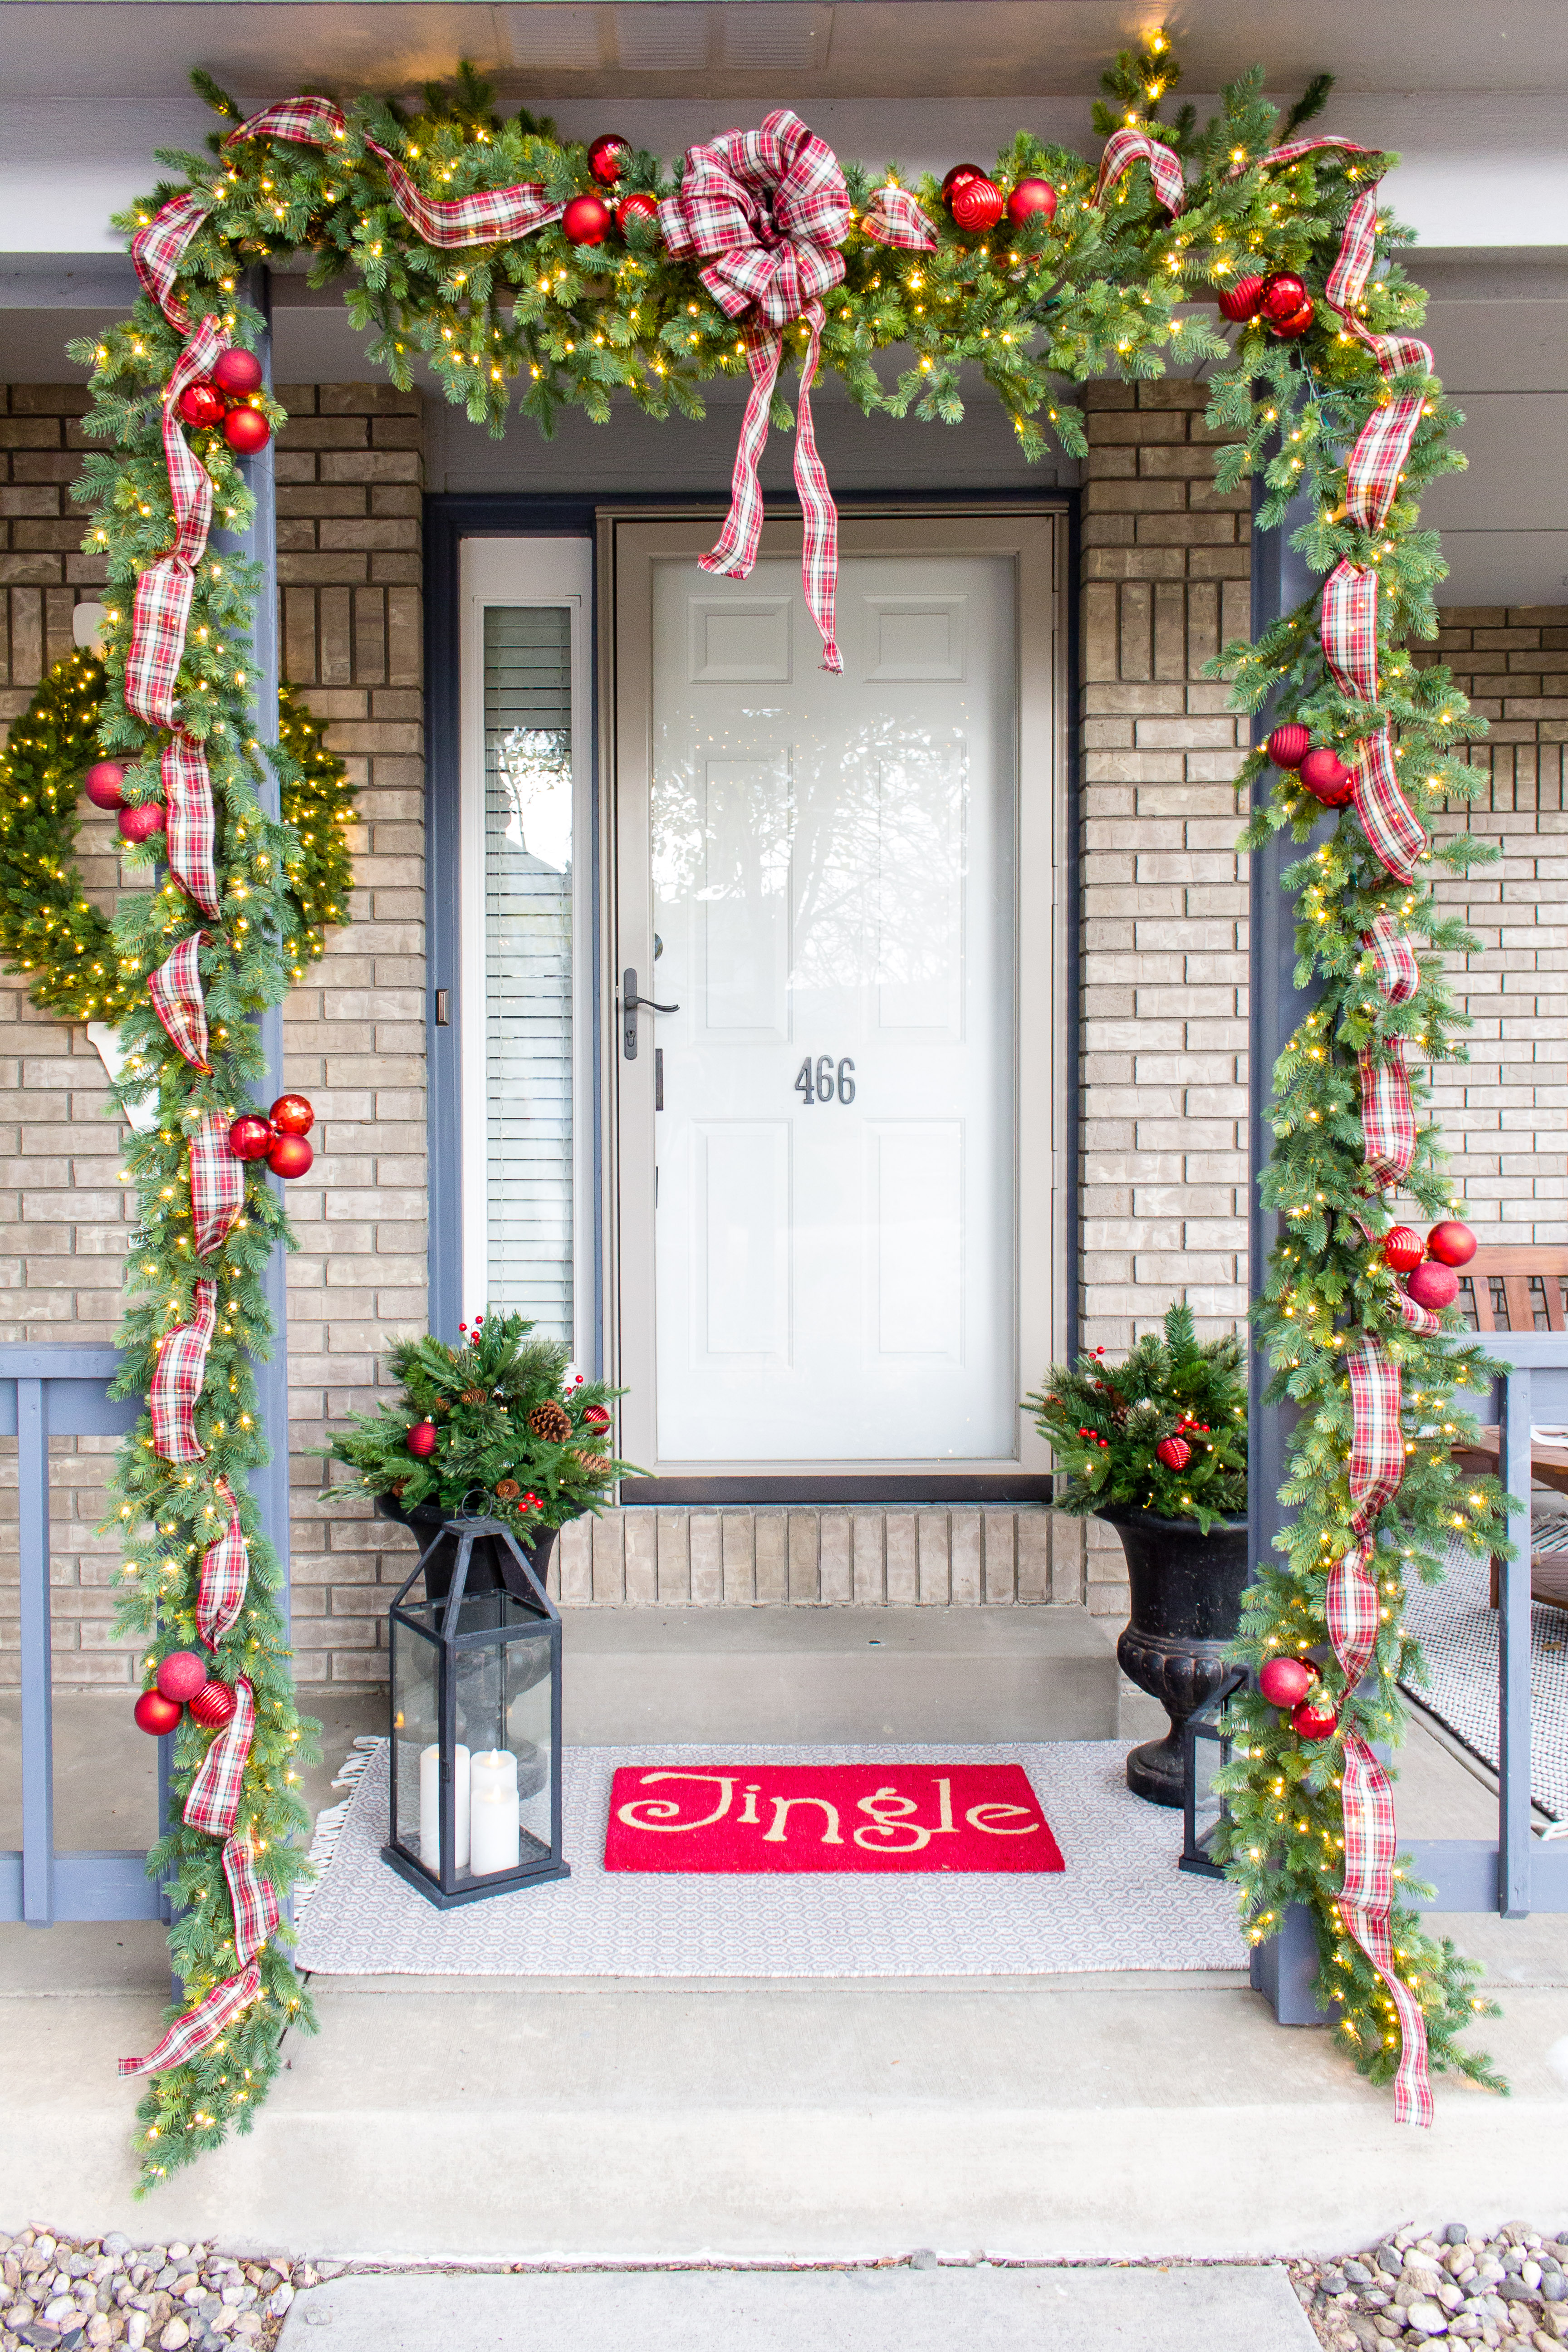 Looking for ideas on how to add Christmas cheer to your front door for the holidays? I have a ton of tips!